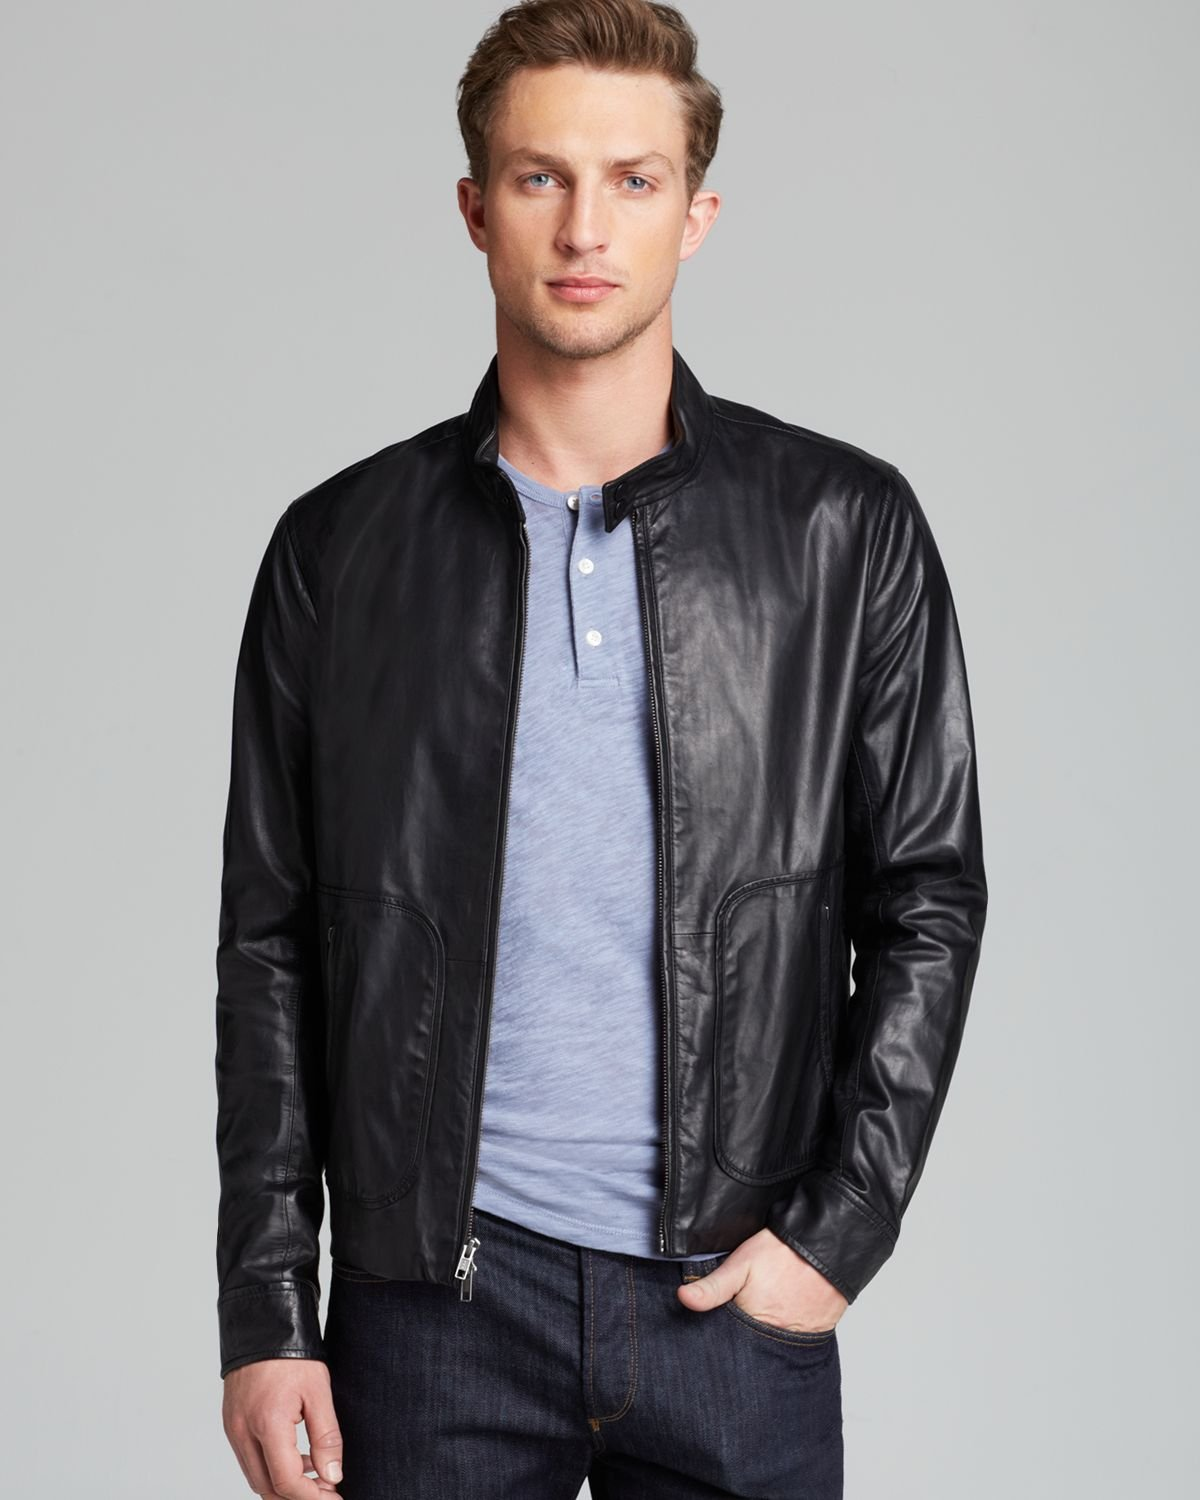 Guy in leather jacket